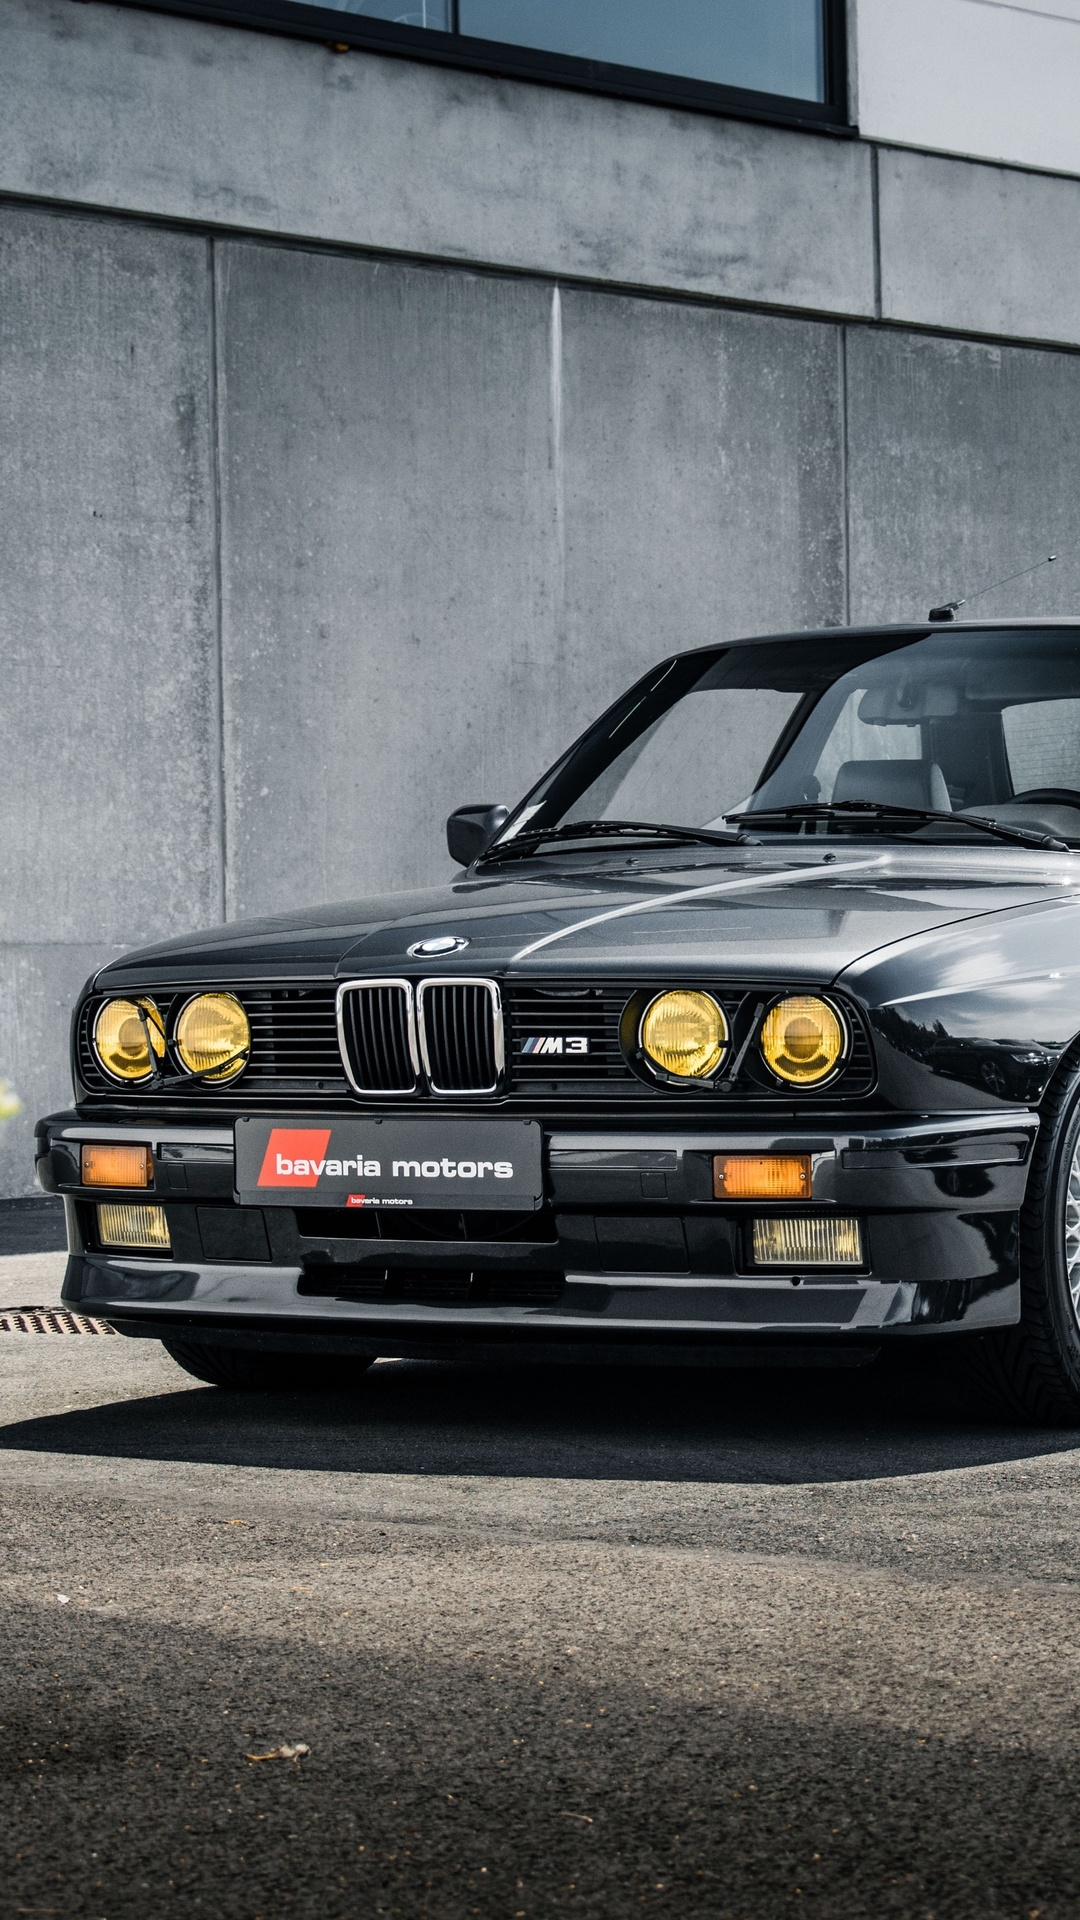 1080x1920 BMW M3 E30 3 Series Black Coupe Iphone 7,6s,6 ...